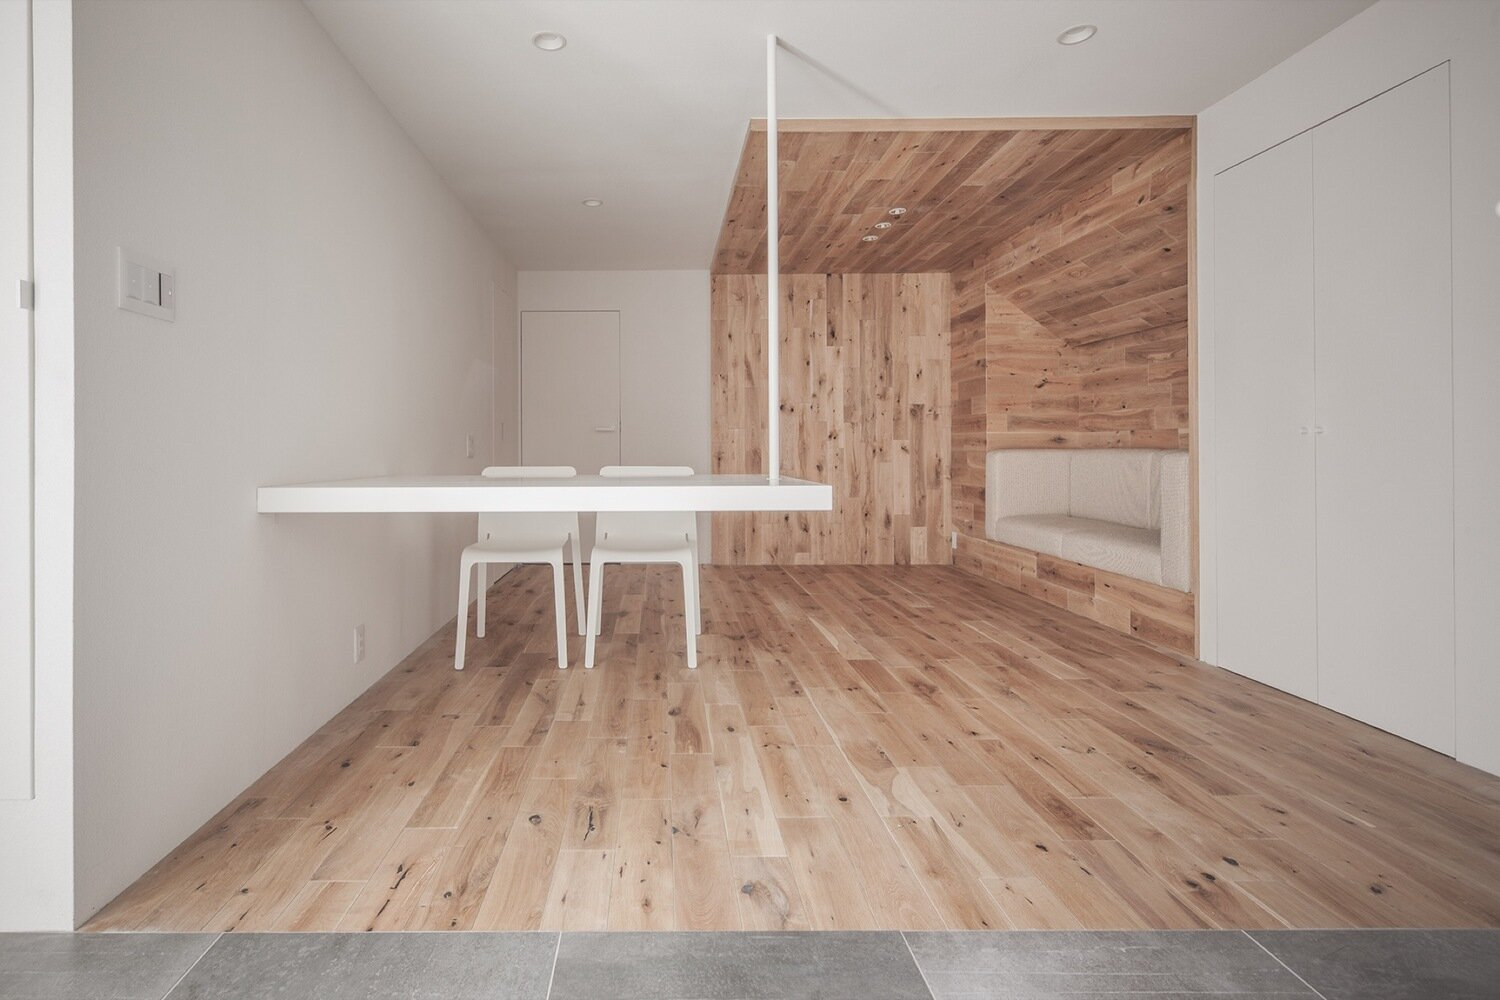 Shibuya Apartment 201 - Hiroyuki Ogawa Architects - Japan - Living Area 1 - Humble Homes